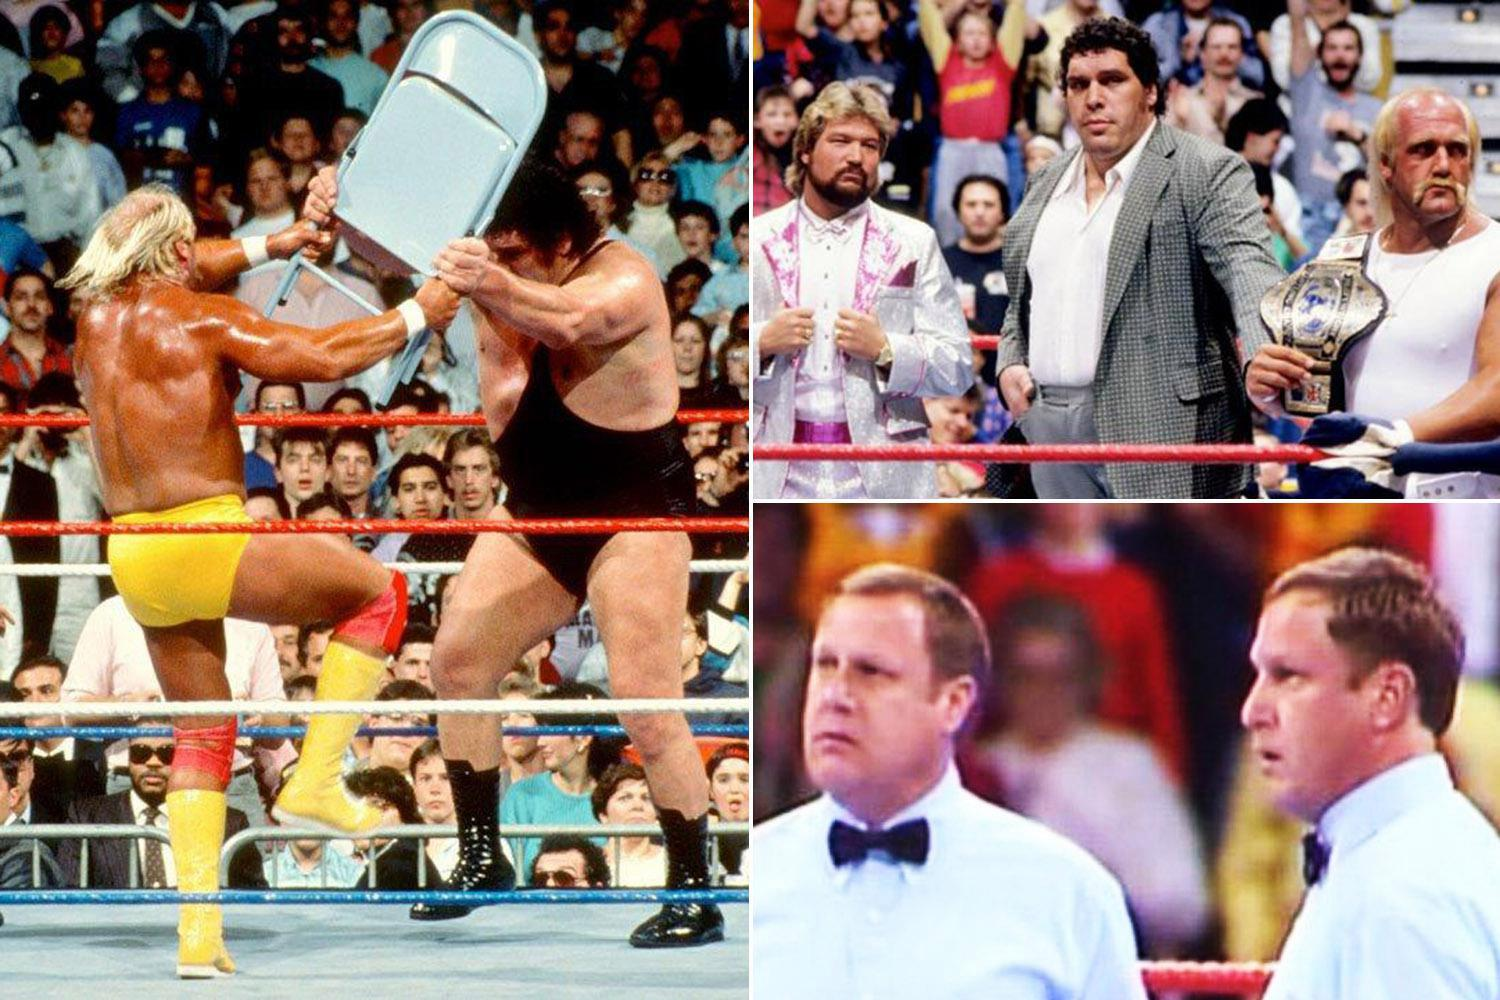 Thirty years on from the WWE's greatest storyline, we look back at Hulk Hogan being duped out of world title by an evil twin referee